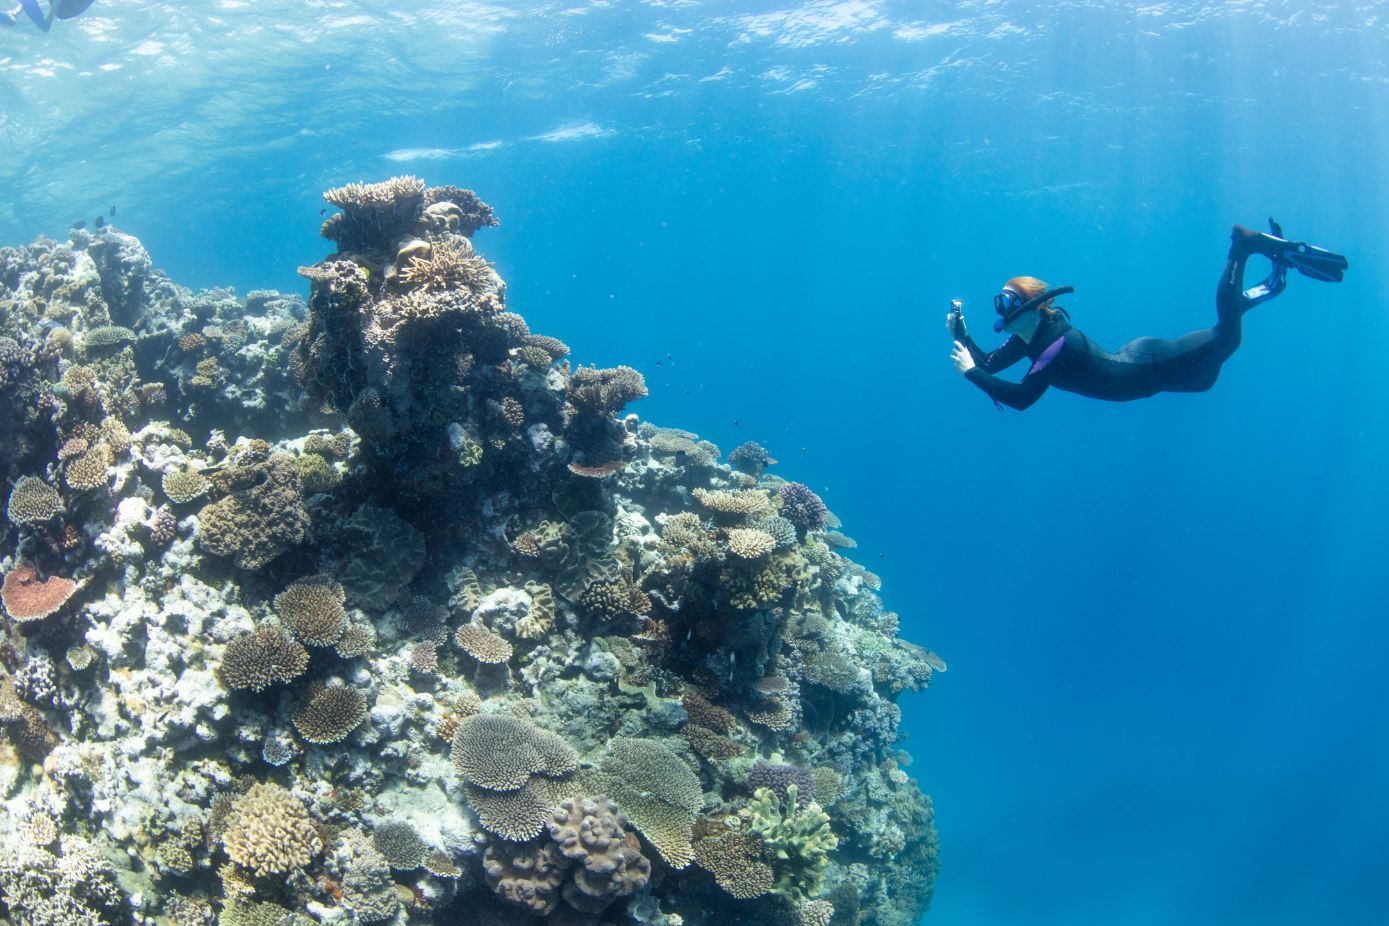 Great Reef Census launch, Milln Reef off Cairns 5 (must credit_ Citizens of the Great Barrier Reef)